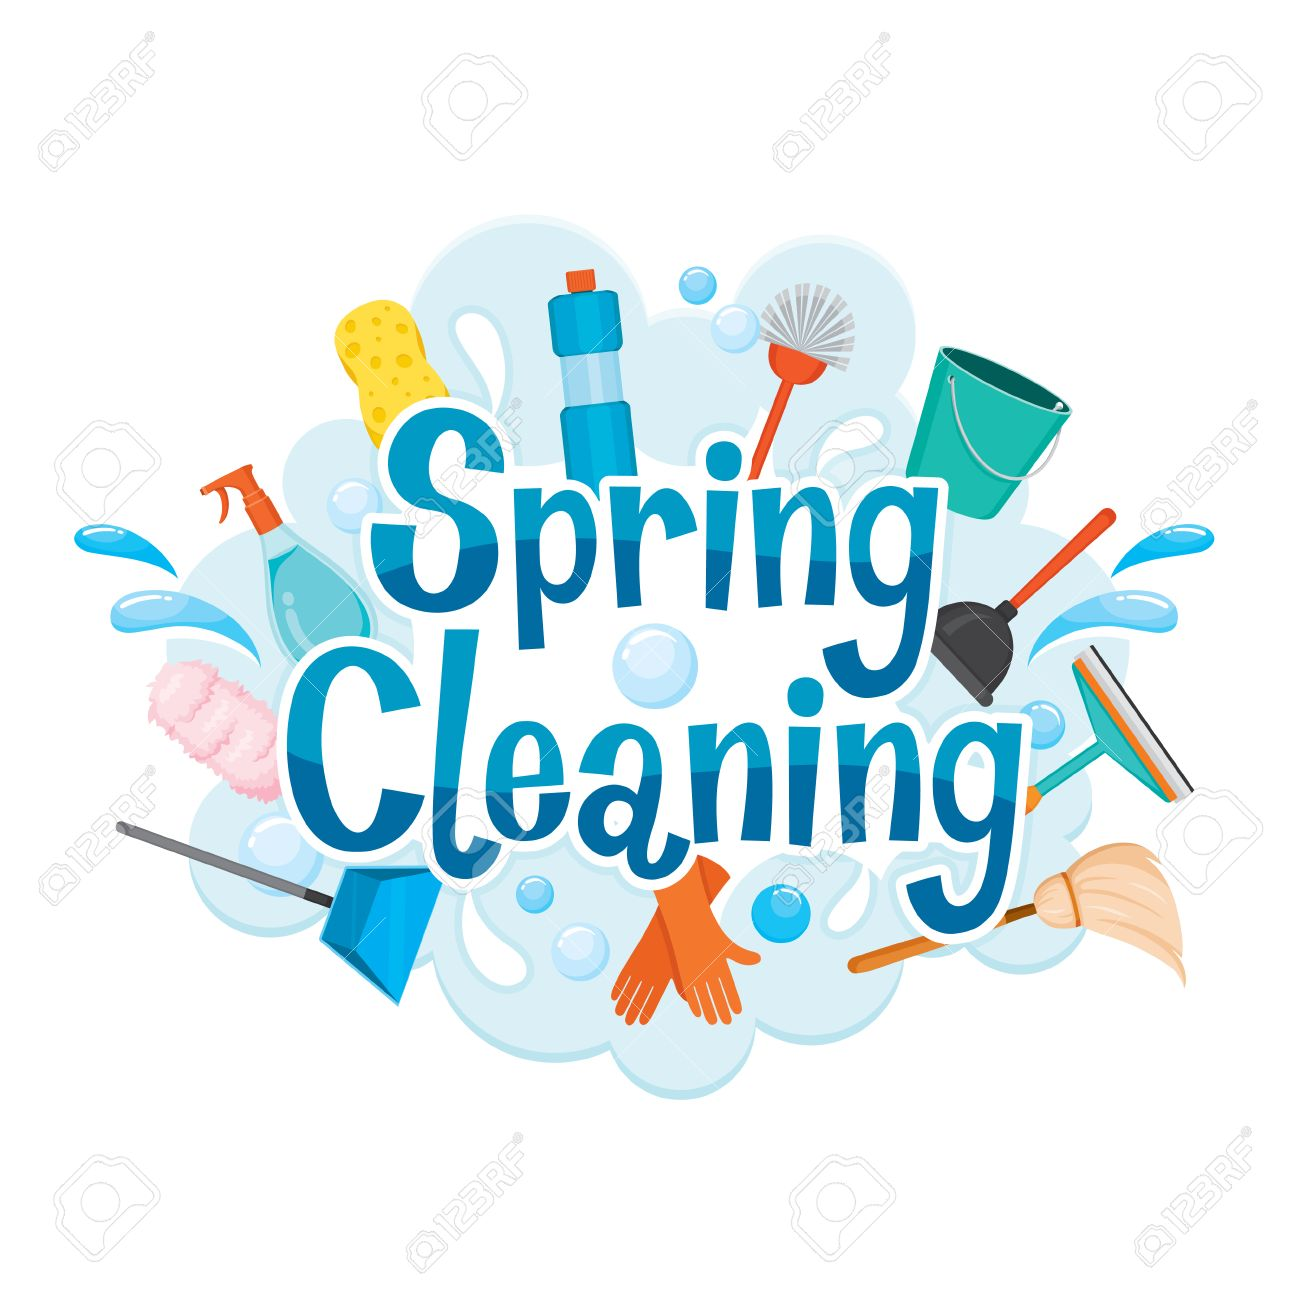 Spring Cleaning Letter Decorating And Cleaning Equipment, Housework,...